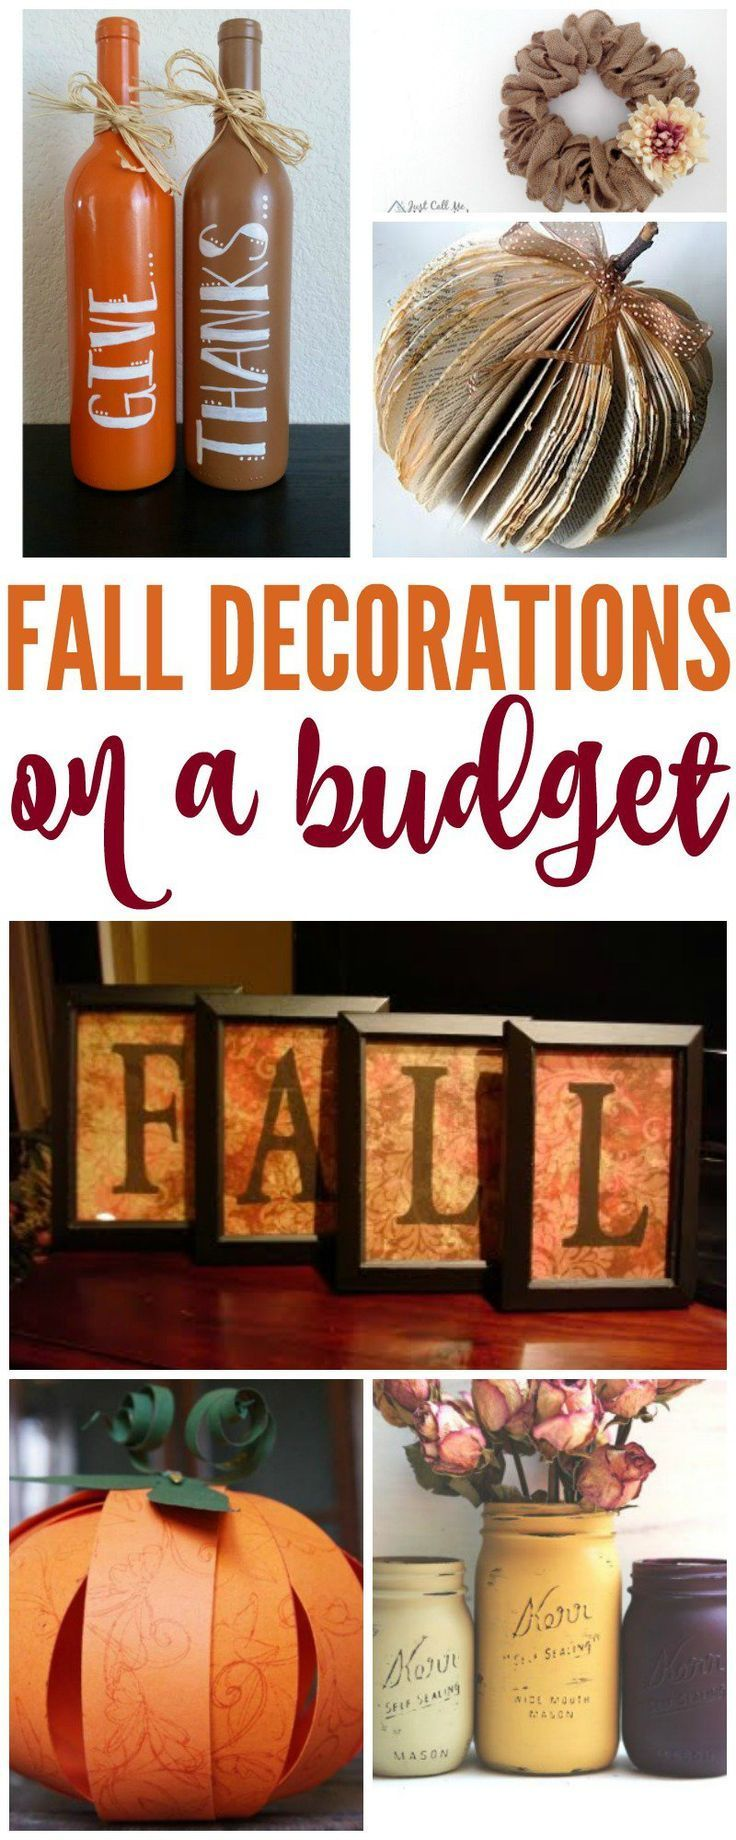 Fall decorating ideas on pinterest - How To Make Fall Decorations On A Budget Diy Ideas And Simple Crafts For Fall